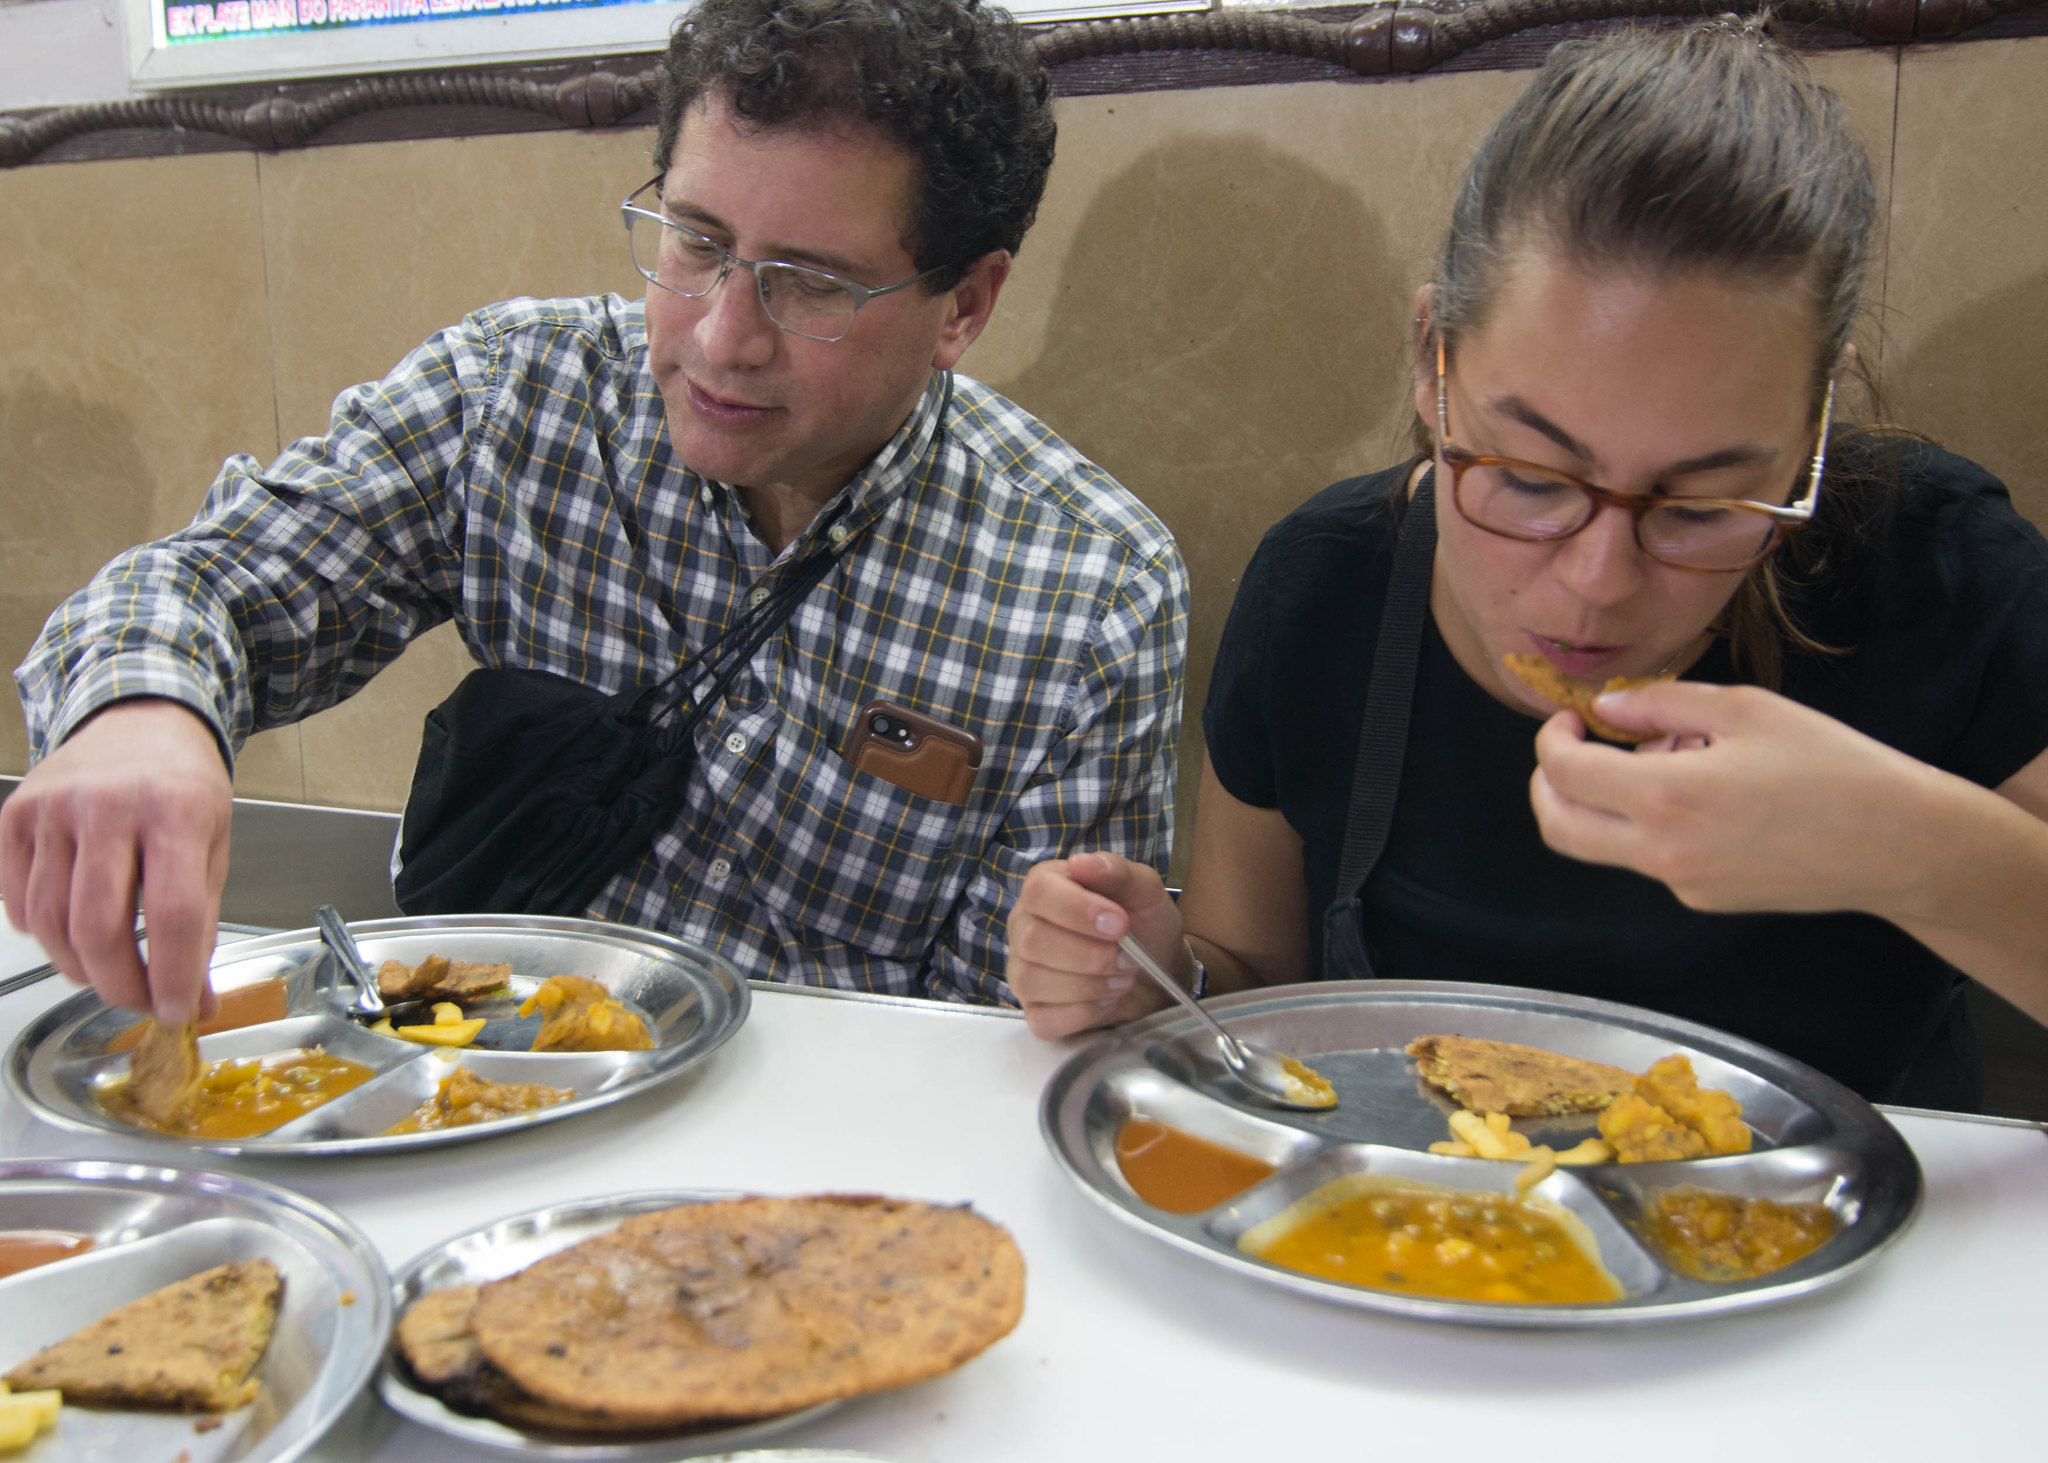 Tasting paranthas fried in ghee